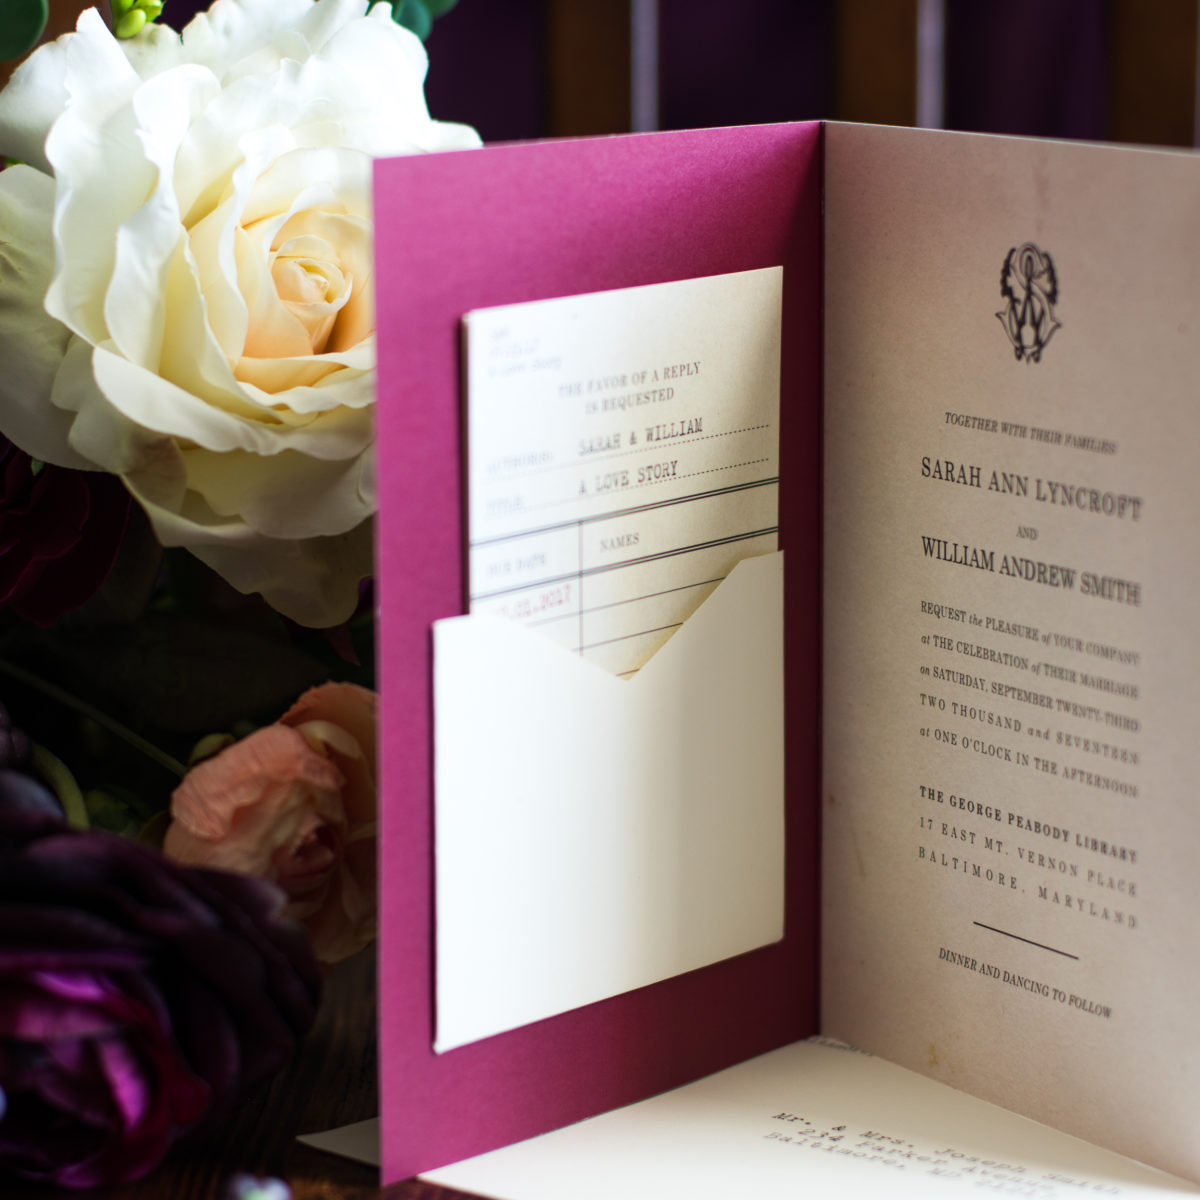 Storybook Wedding Invitation for Literary Wedding | By Posted Fete | #Wedding #LiteraryWedding #ALoveStory #LiteraryTheme